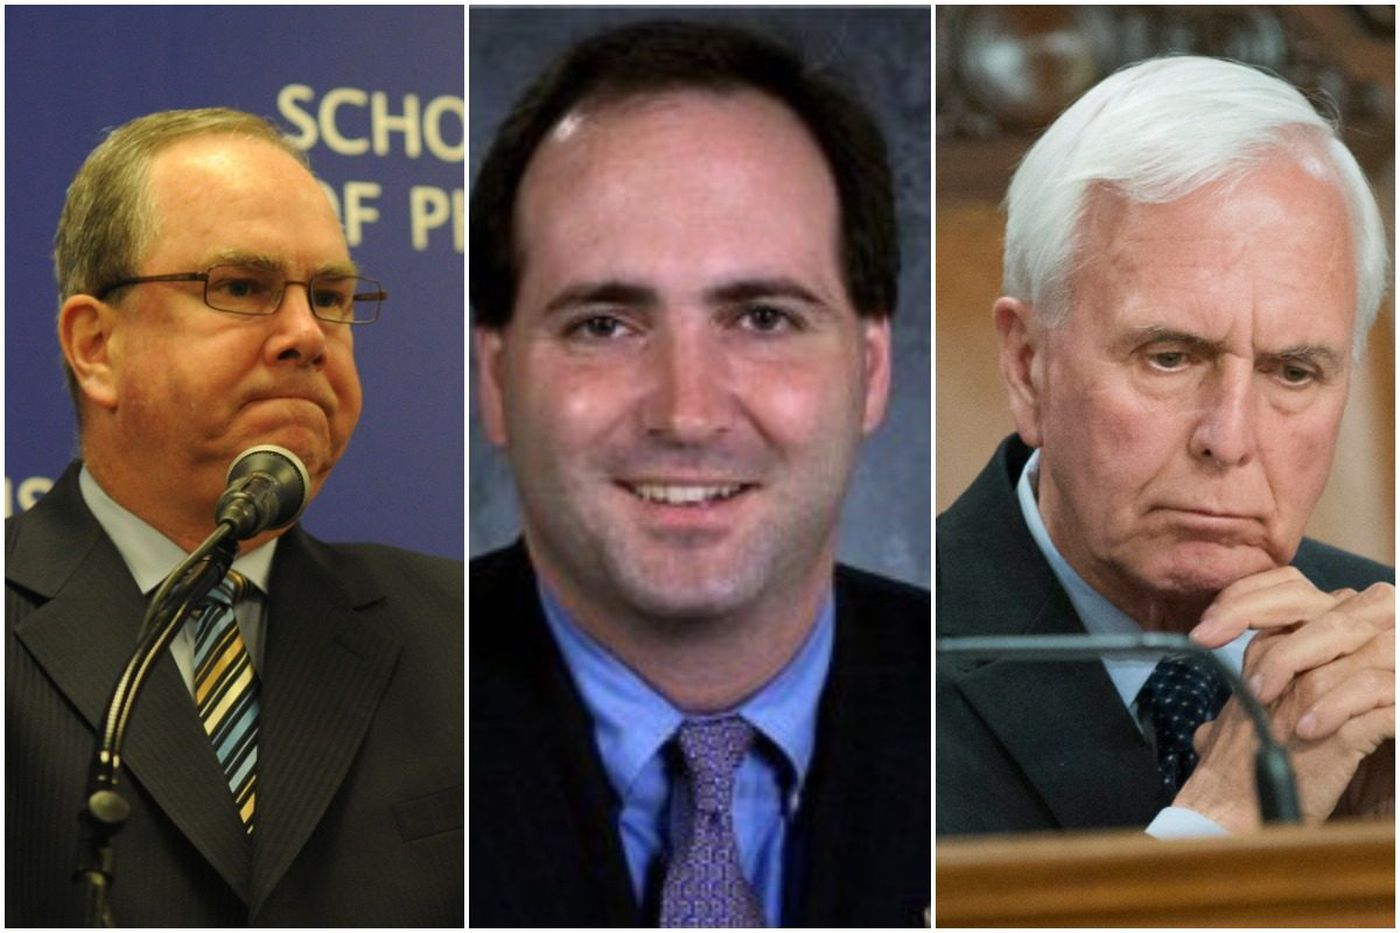 Retiring area GOP lawmakers could mean more Dems (and less clout) in Harrisburg - thanks to Donald Trump